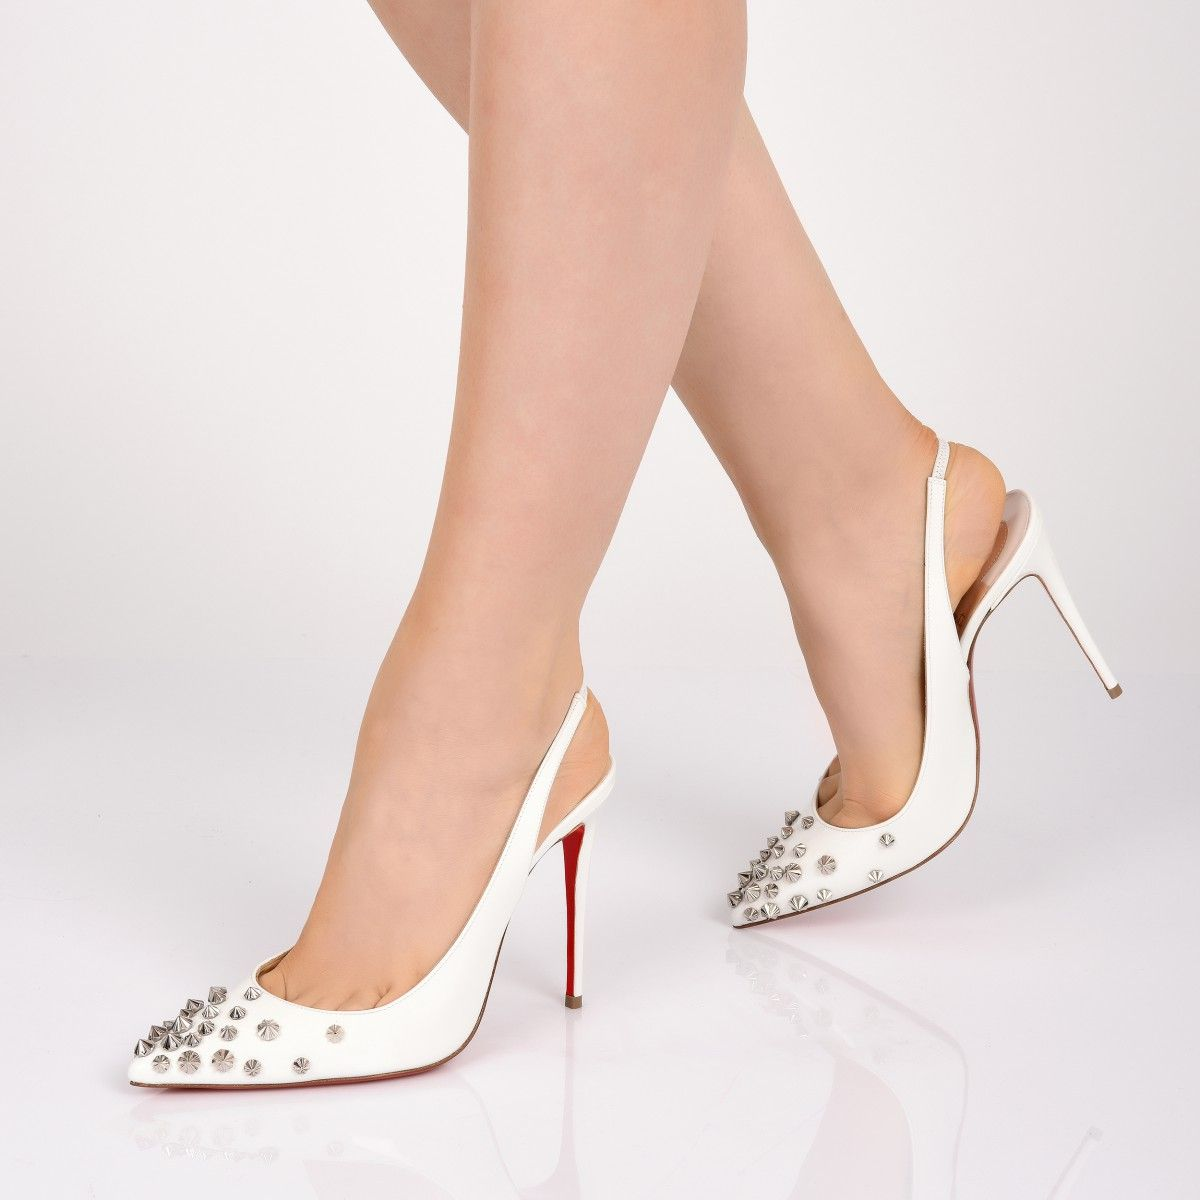 126461ba44b Drama Sling 100 Latte/Silver Patent Leather - Women Shoes ...